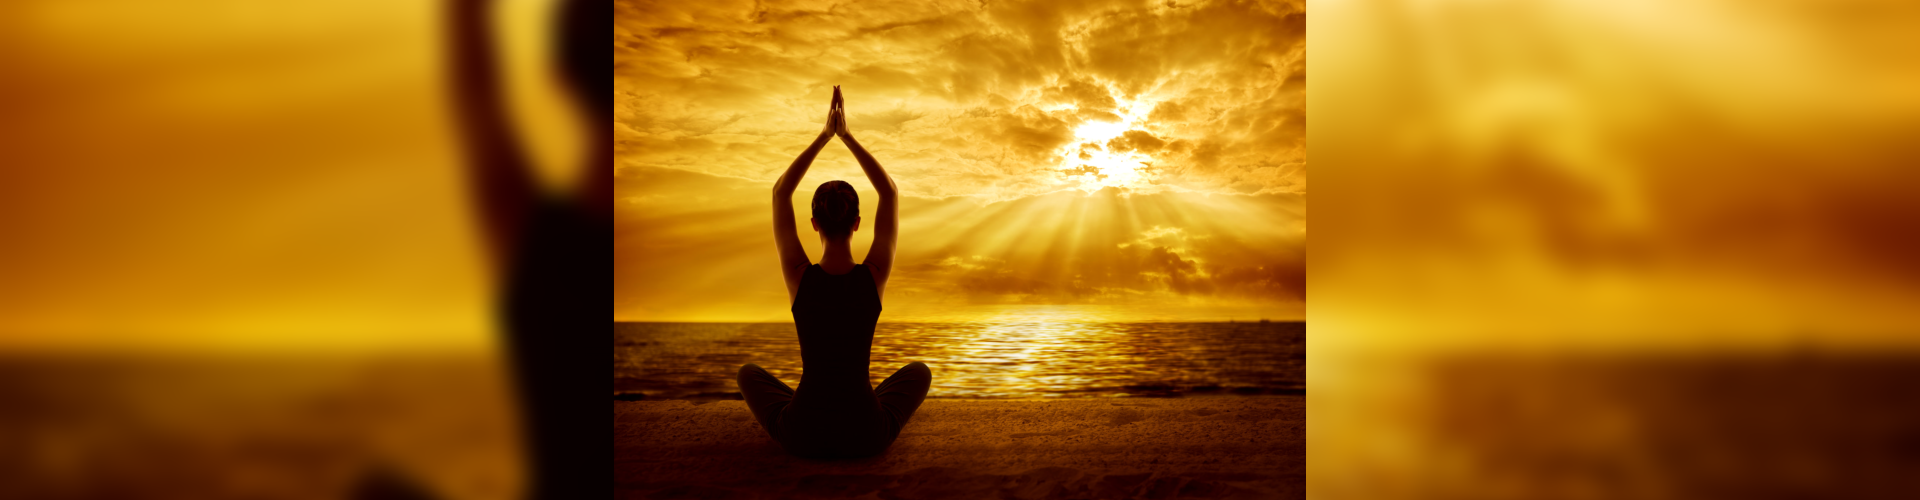 yoga meditation on sun set